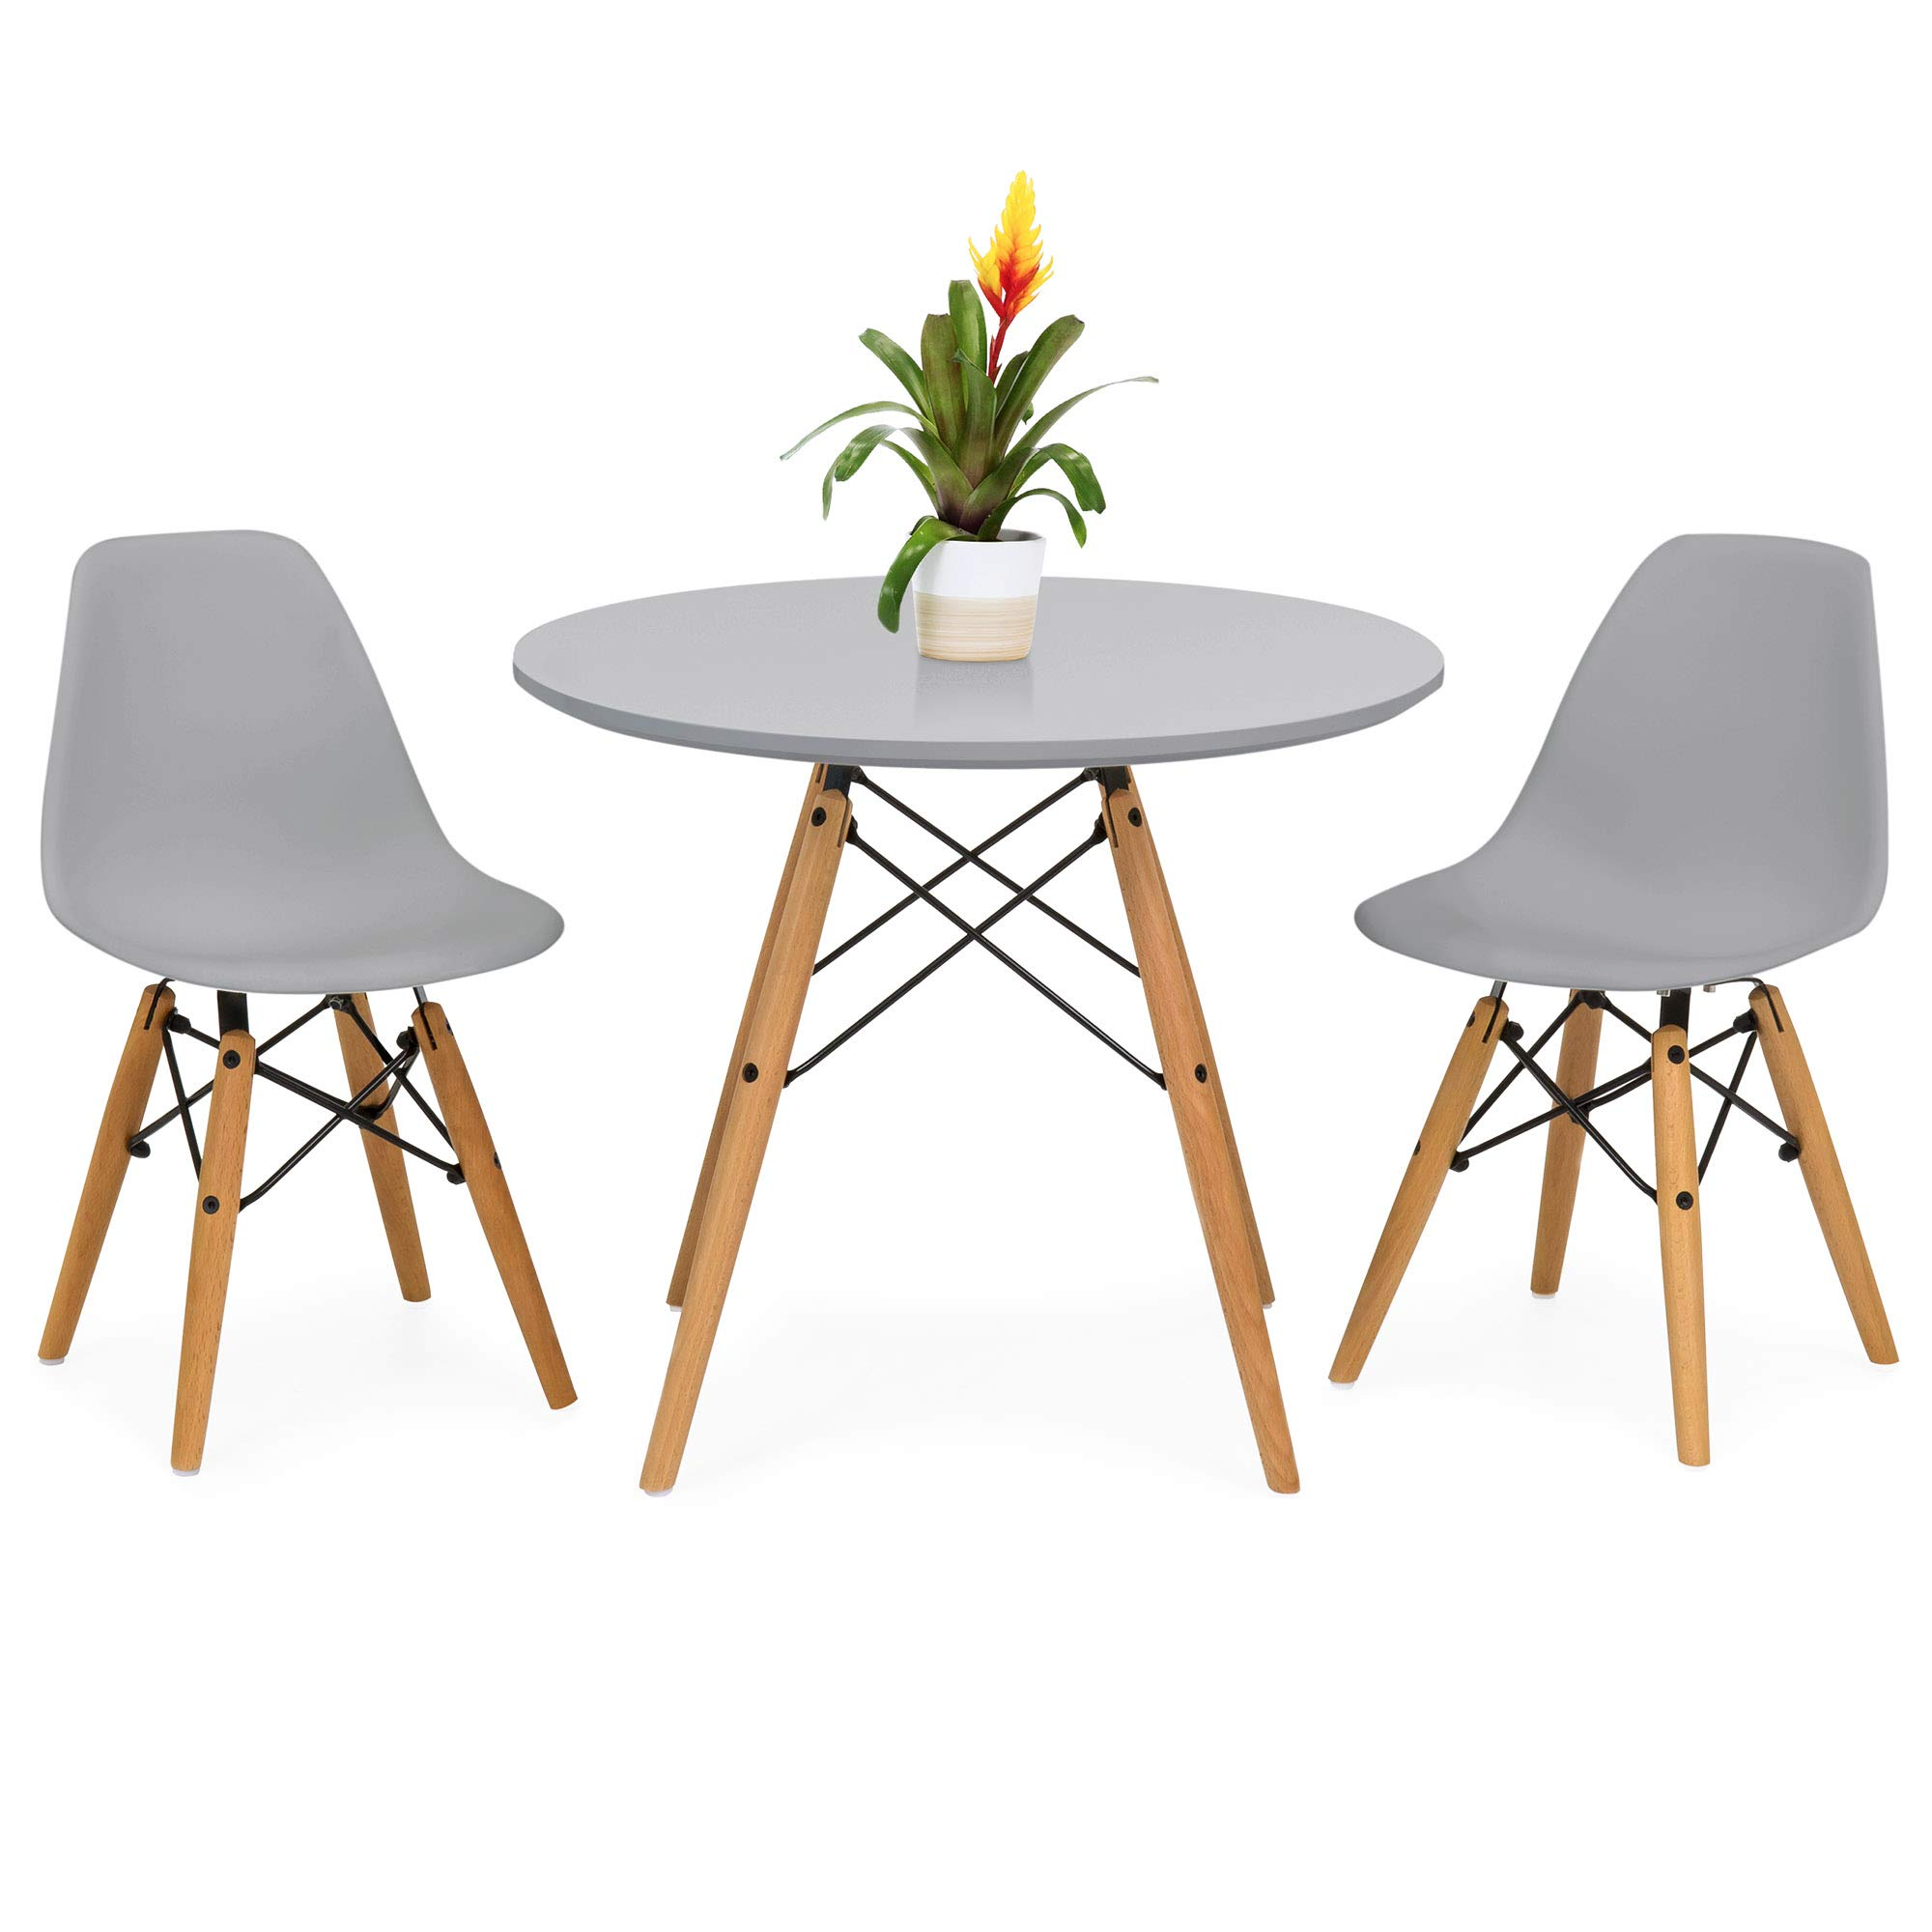 Best Choice Products Kids Mid-Century Modern Eames Style Dining Room Round Table Set w/ 2 Armless Wood Leg Chairs - Gray